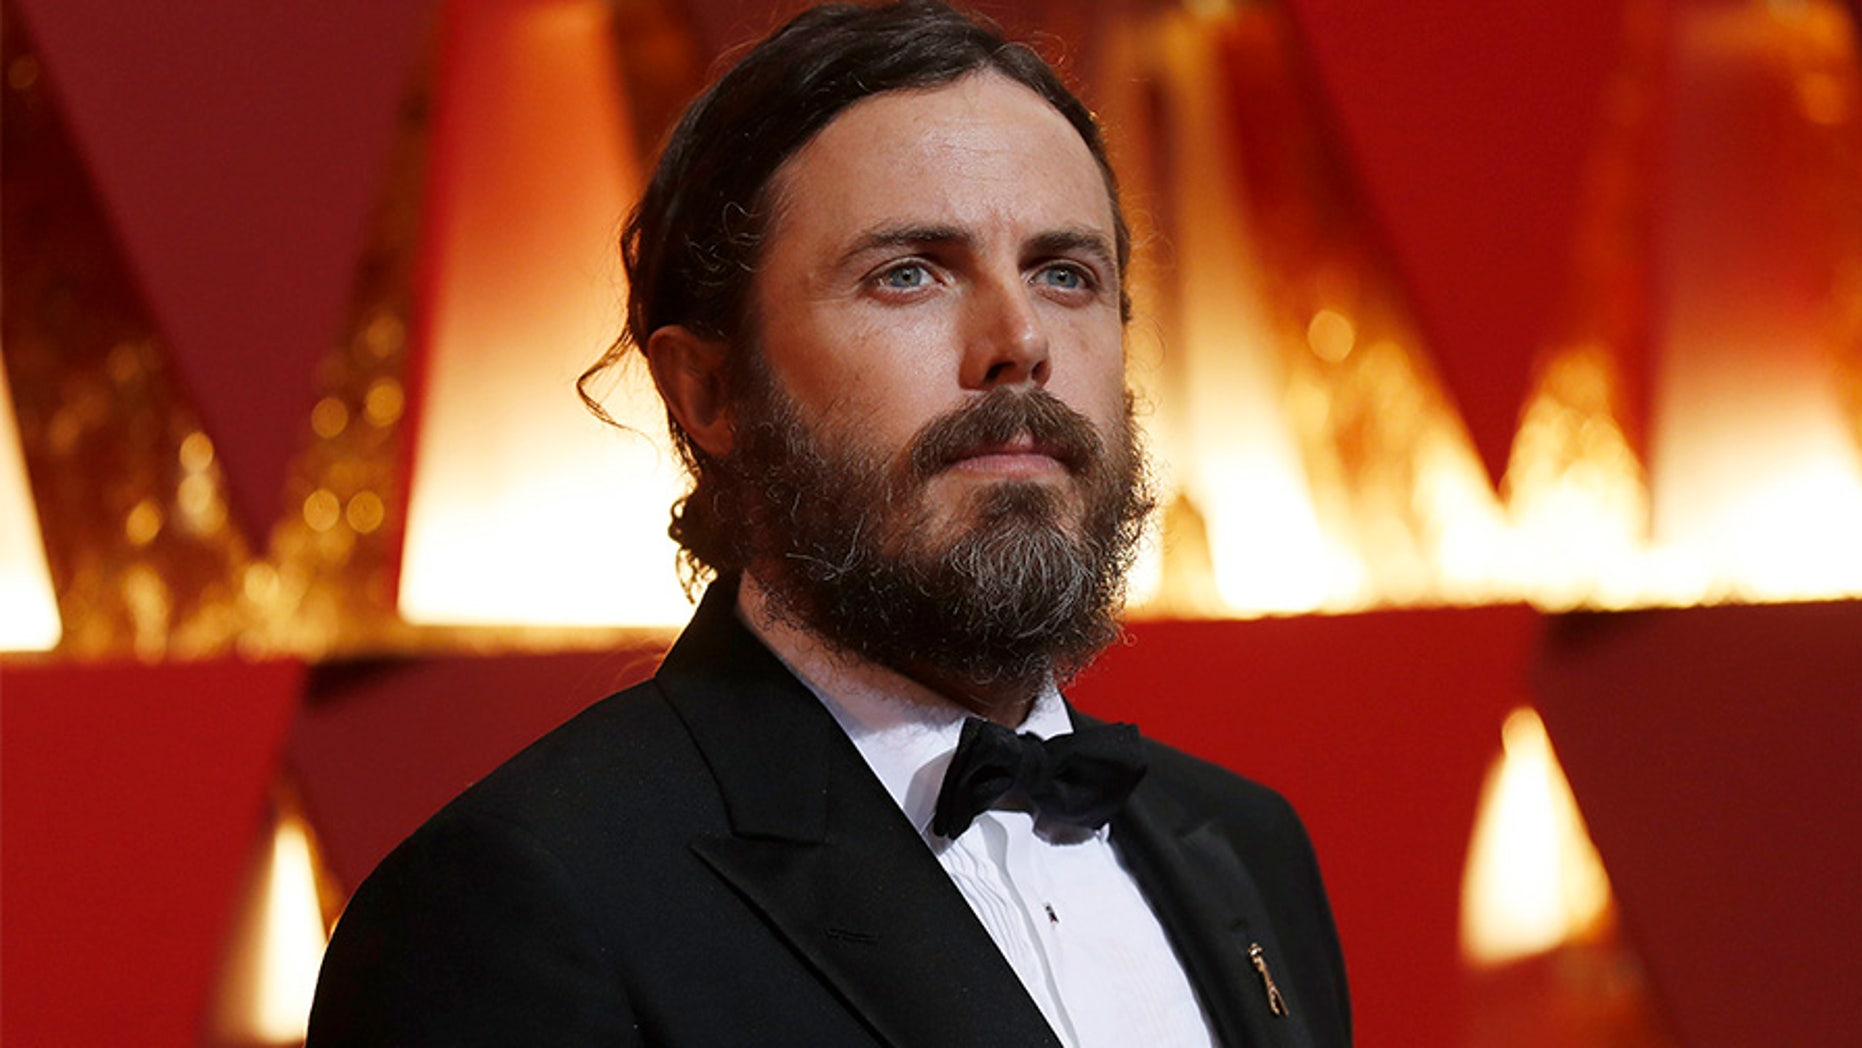 """Despite winning an Oscar, court documents obtained by <a href=""""http://people.com/movies/casey-affleck-discloses-400k-yearly-salary-divorce-docs/"""" target=""""_blank"""">People Magazine</a> revealed Casey Affleck's annual salary is only $400K, which is surprisingly low by Hollywood standards. The actor and director is 42."""